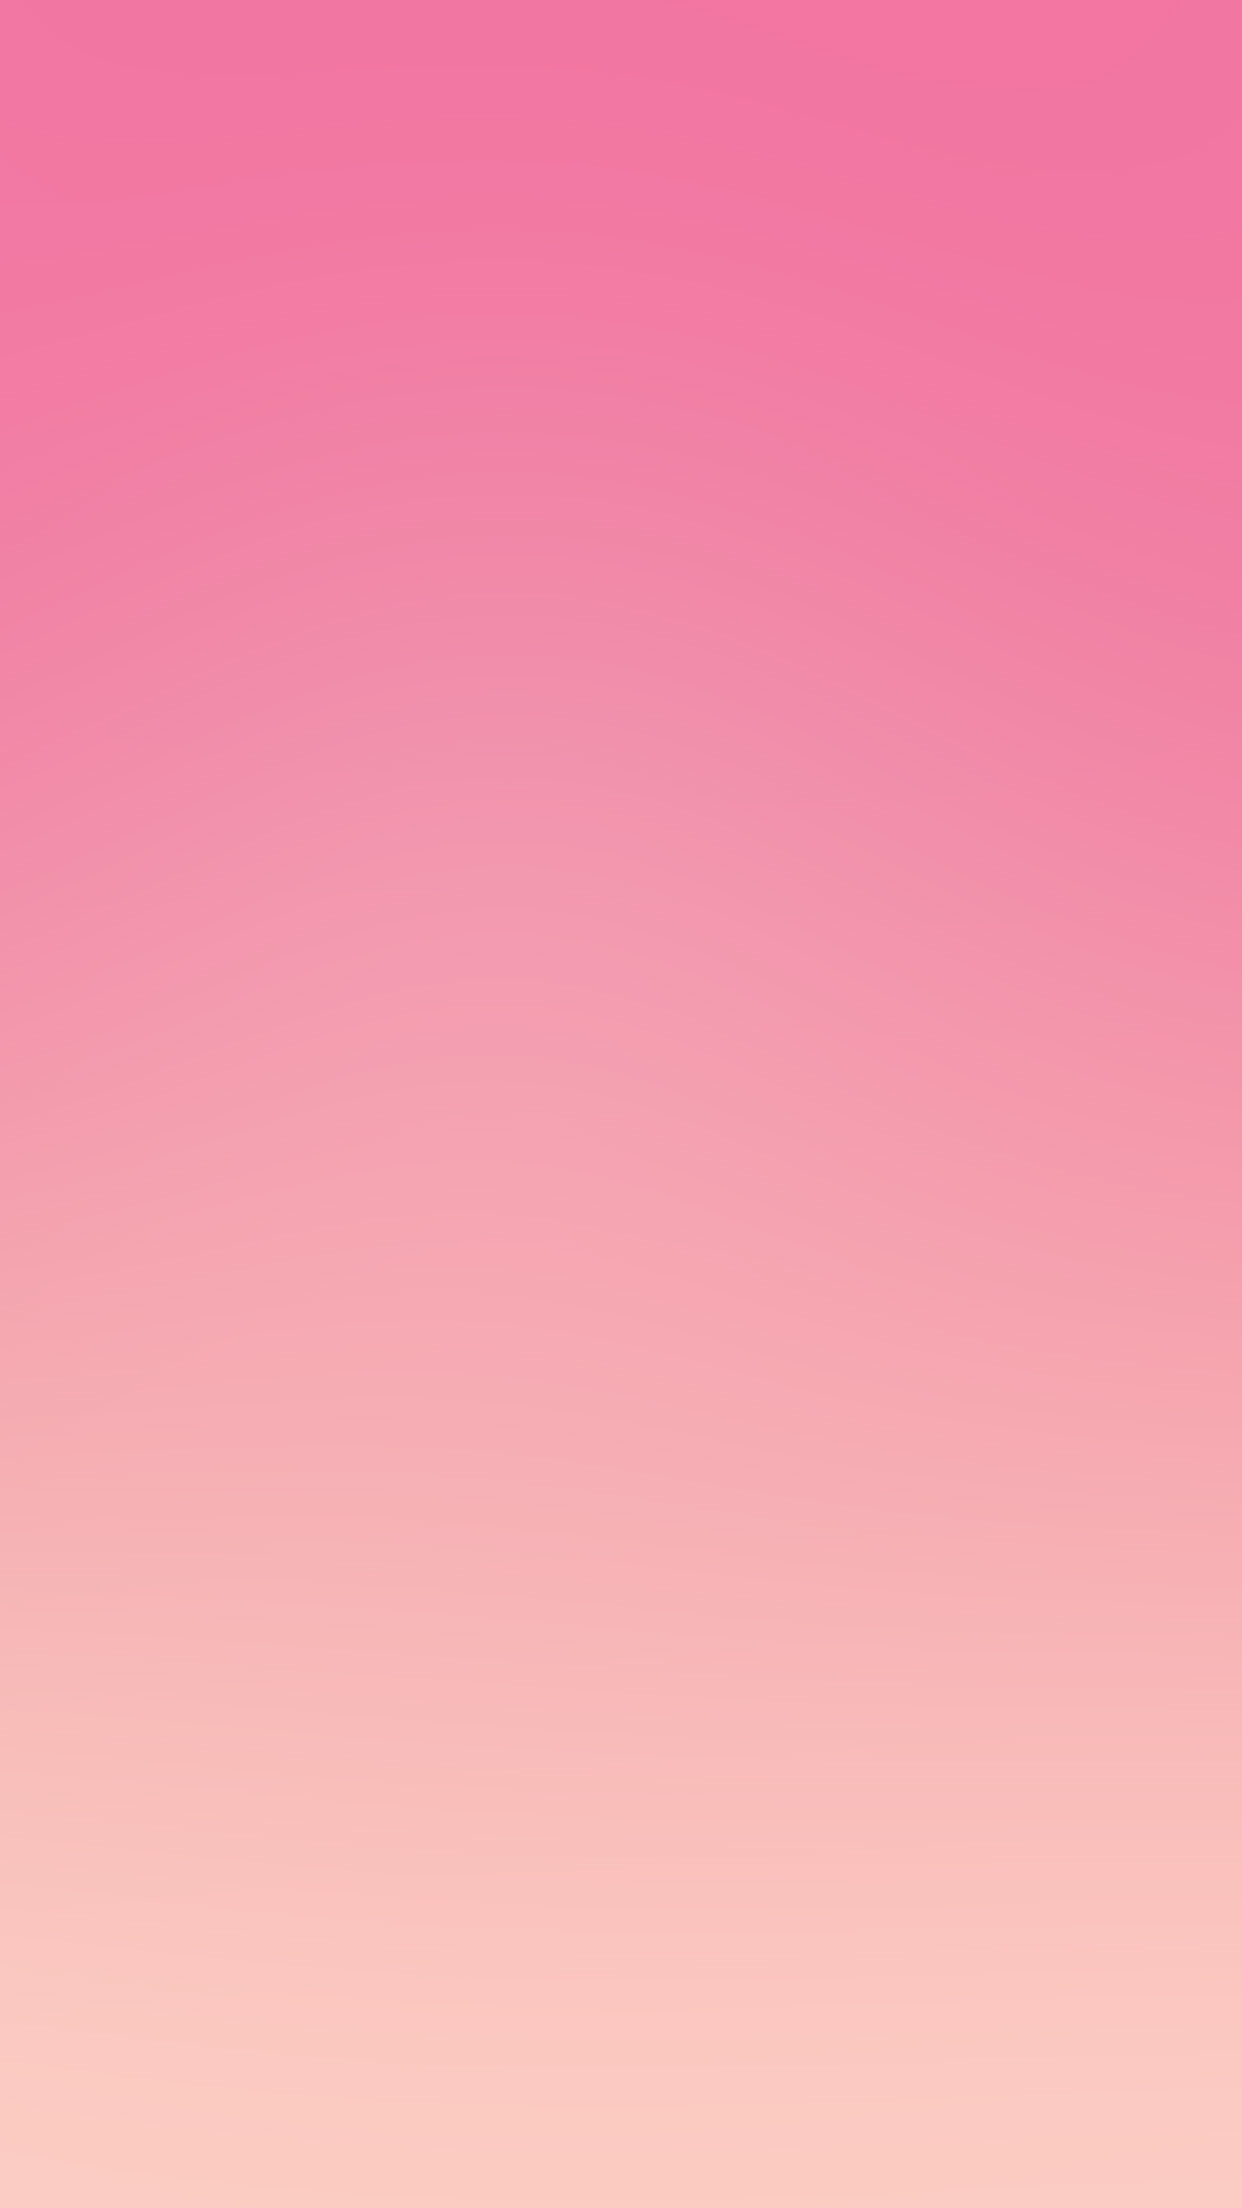 57 Plain Pink Wallpapers on WallpaperPlay 1242x2208